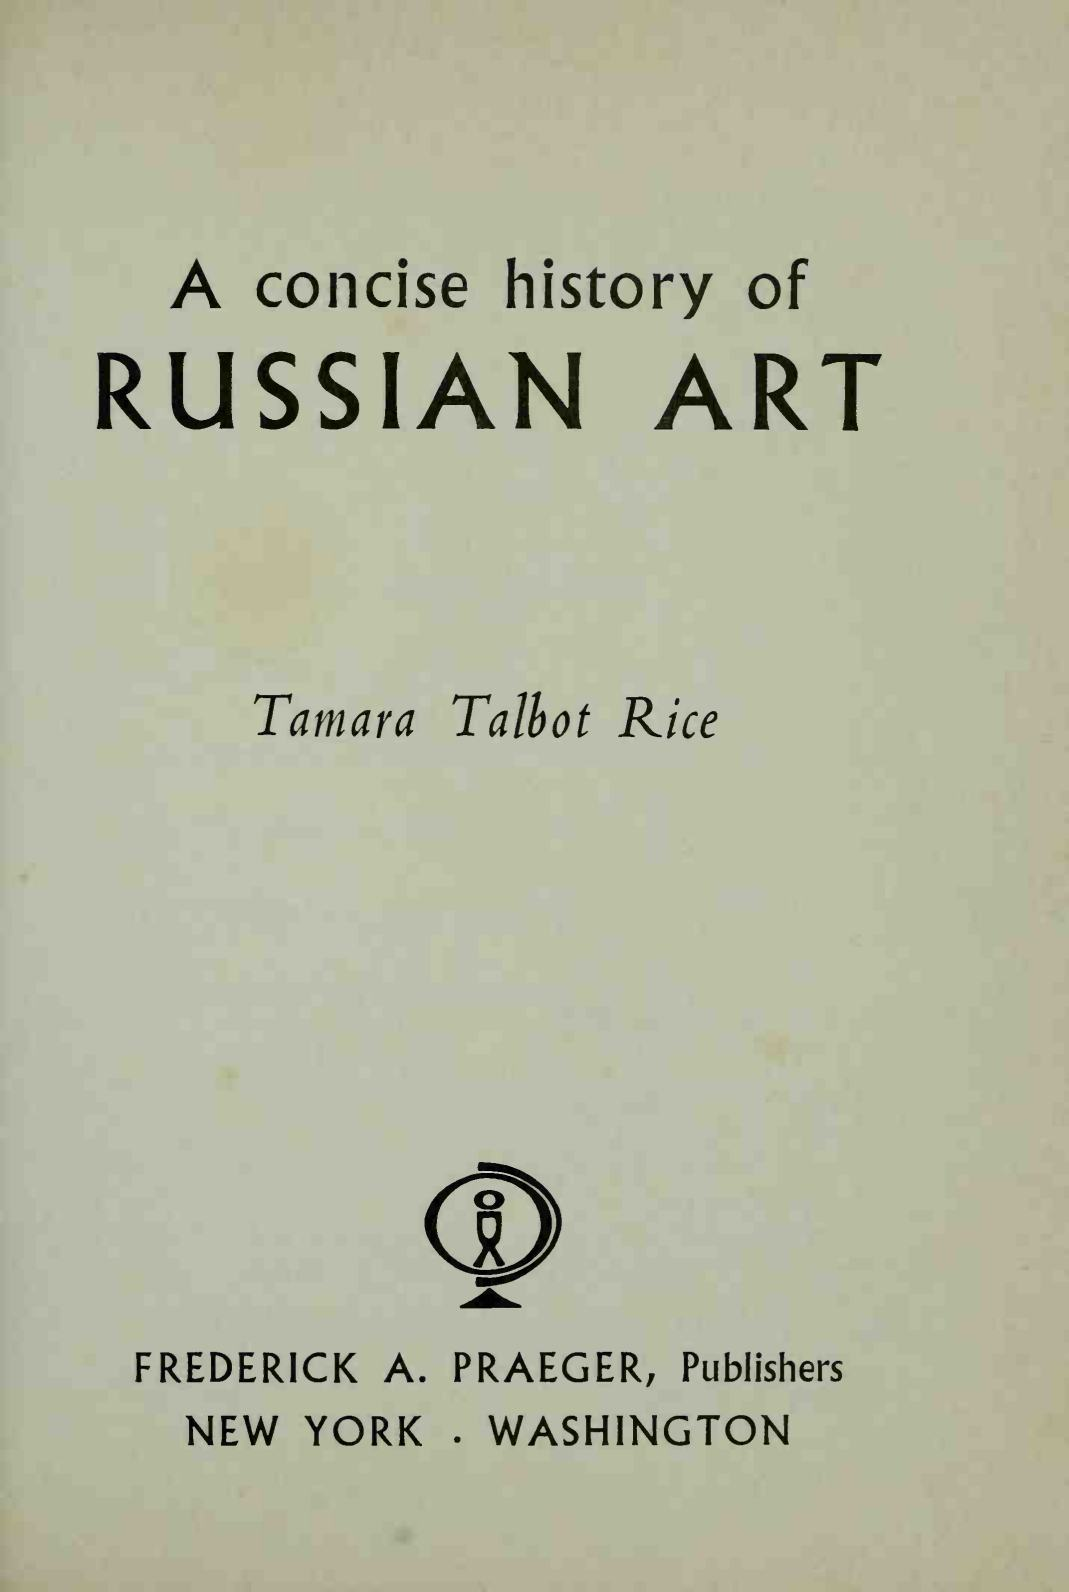 A concise history of Russian art / Tamara Talbot Rice. — New York ; Washington : Frederick A. Praeger, Publishers, 1963